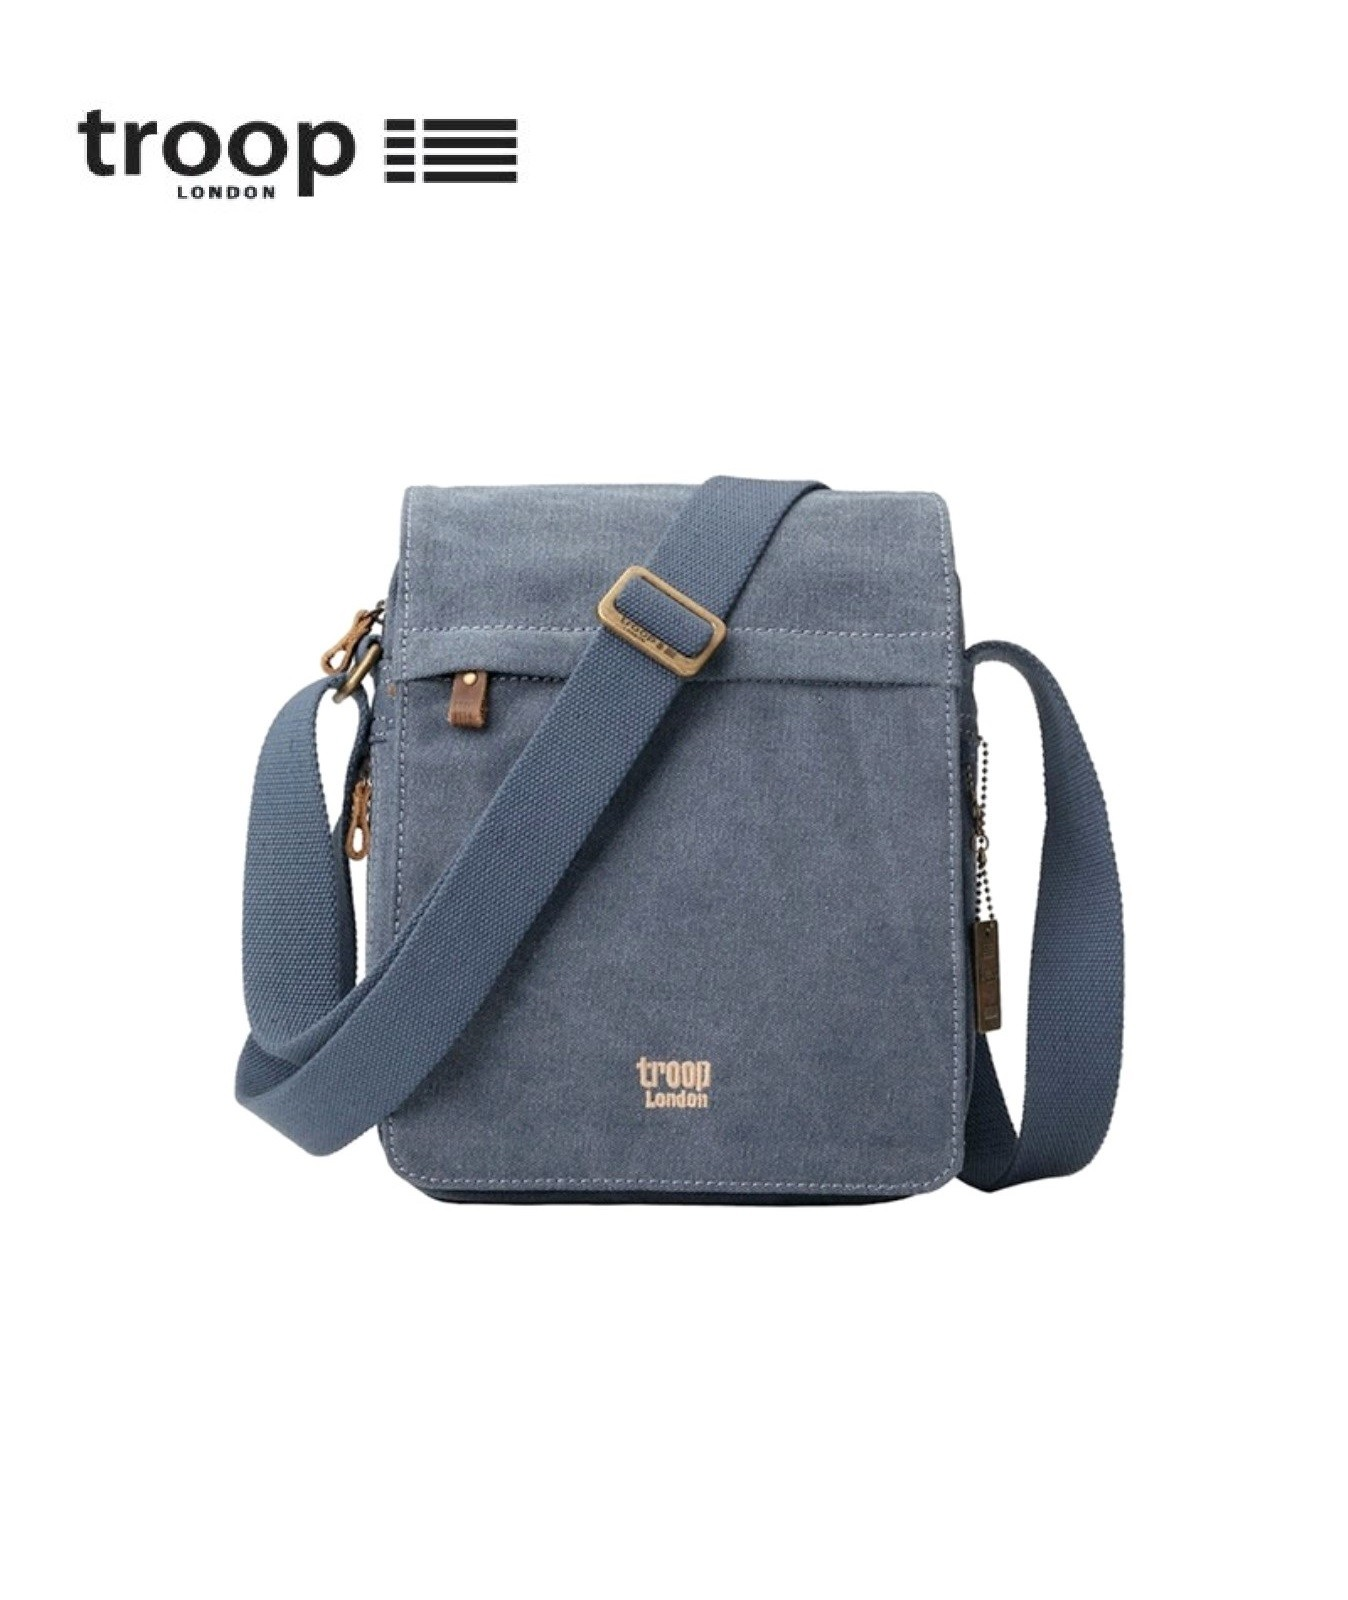 TRP0242 TROOP LONDON CLASSIC CANVAS ACROSS BODY BAG